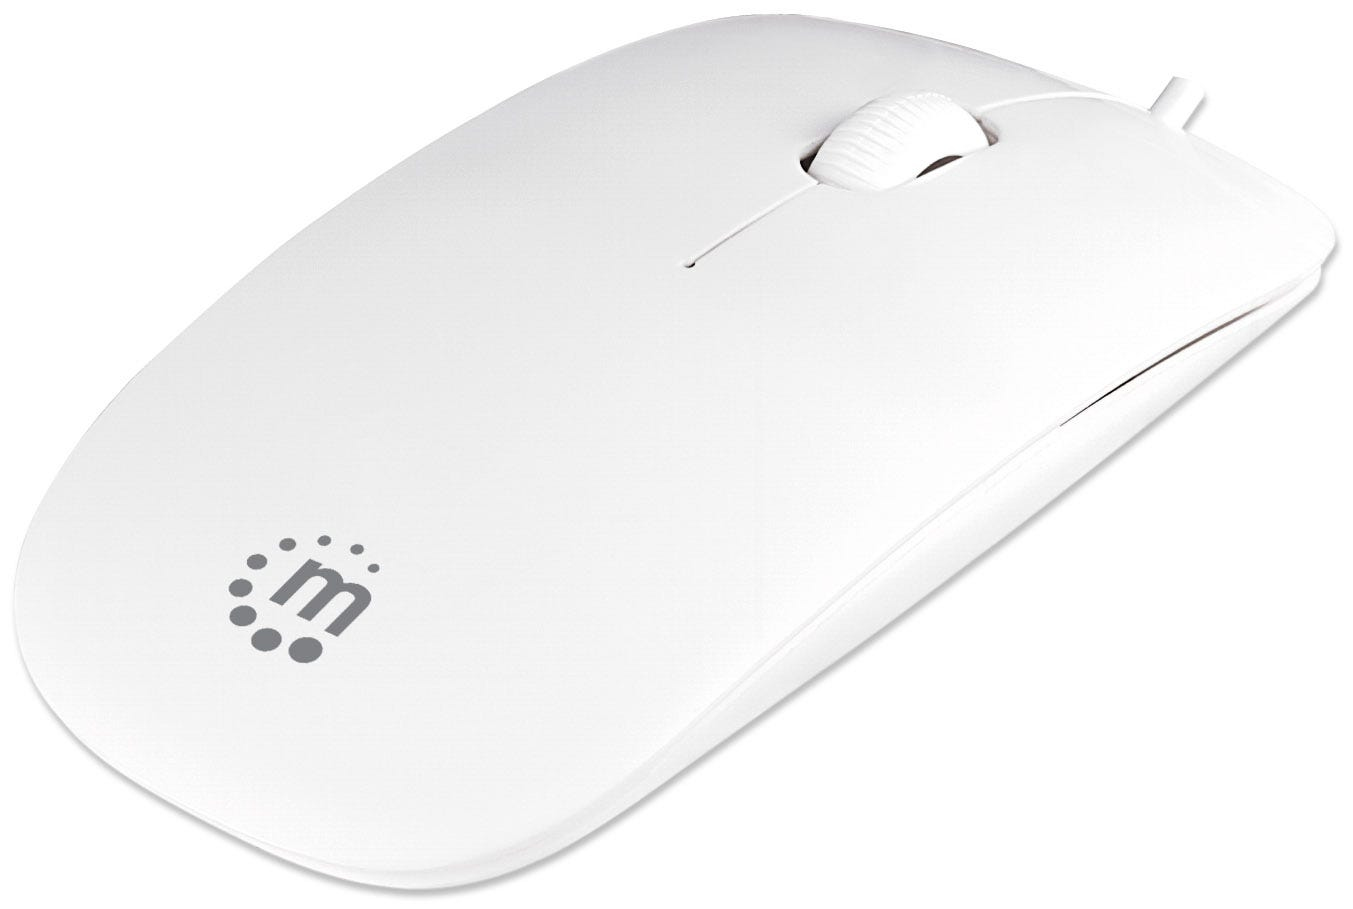 Manhattan Silhouette Sculpted USB Wired Mouse, White, 1000dpi, USB-A, Optical, Lightweight, Flat, Three Button with Scroll Wheel, Blister